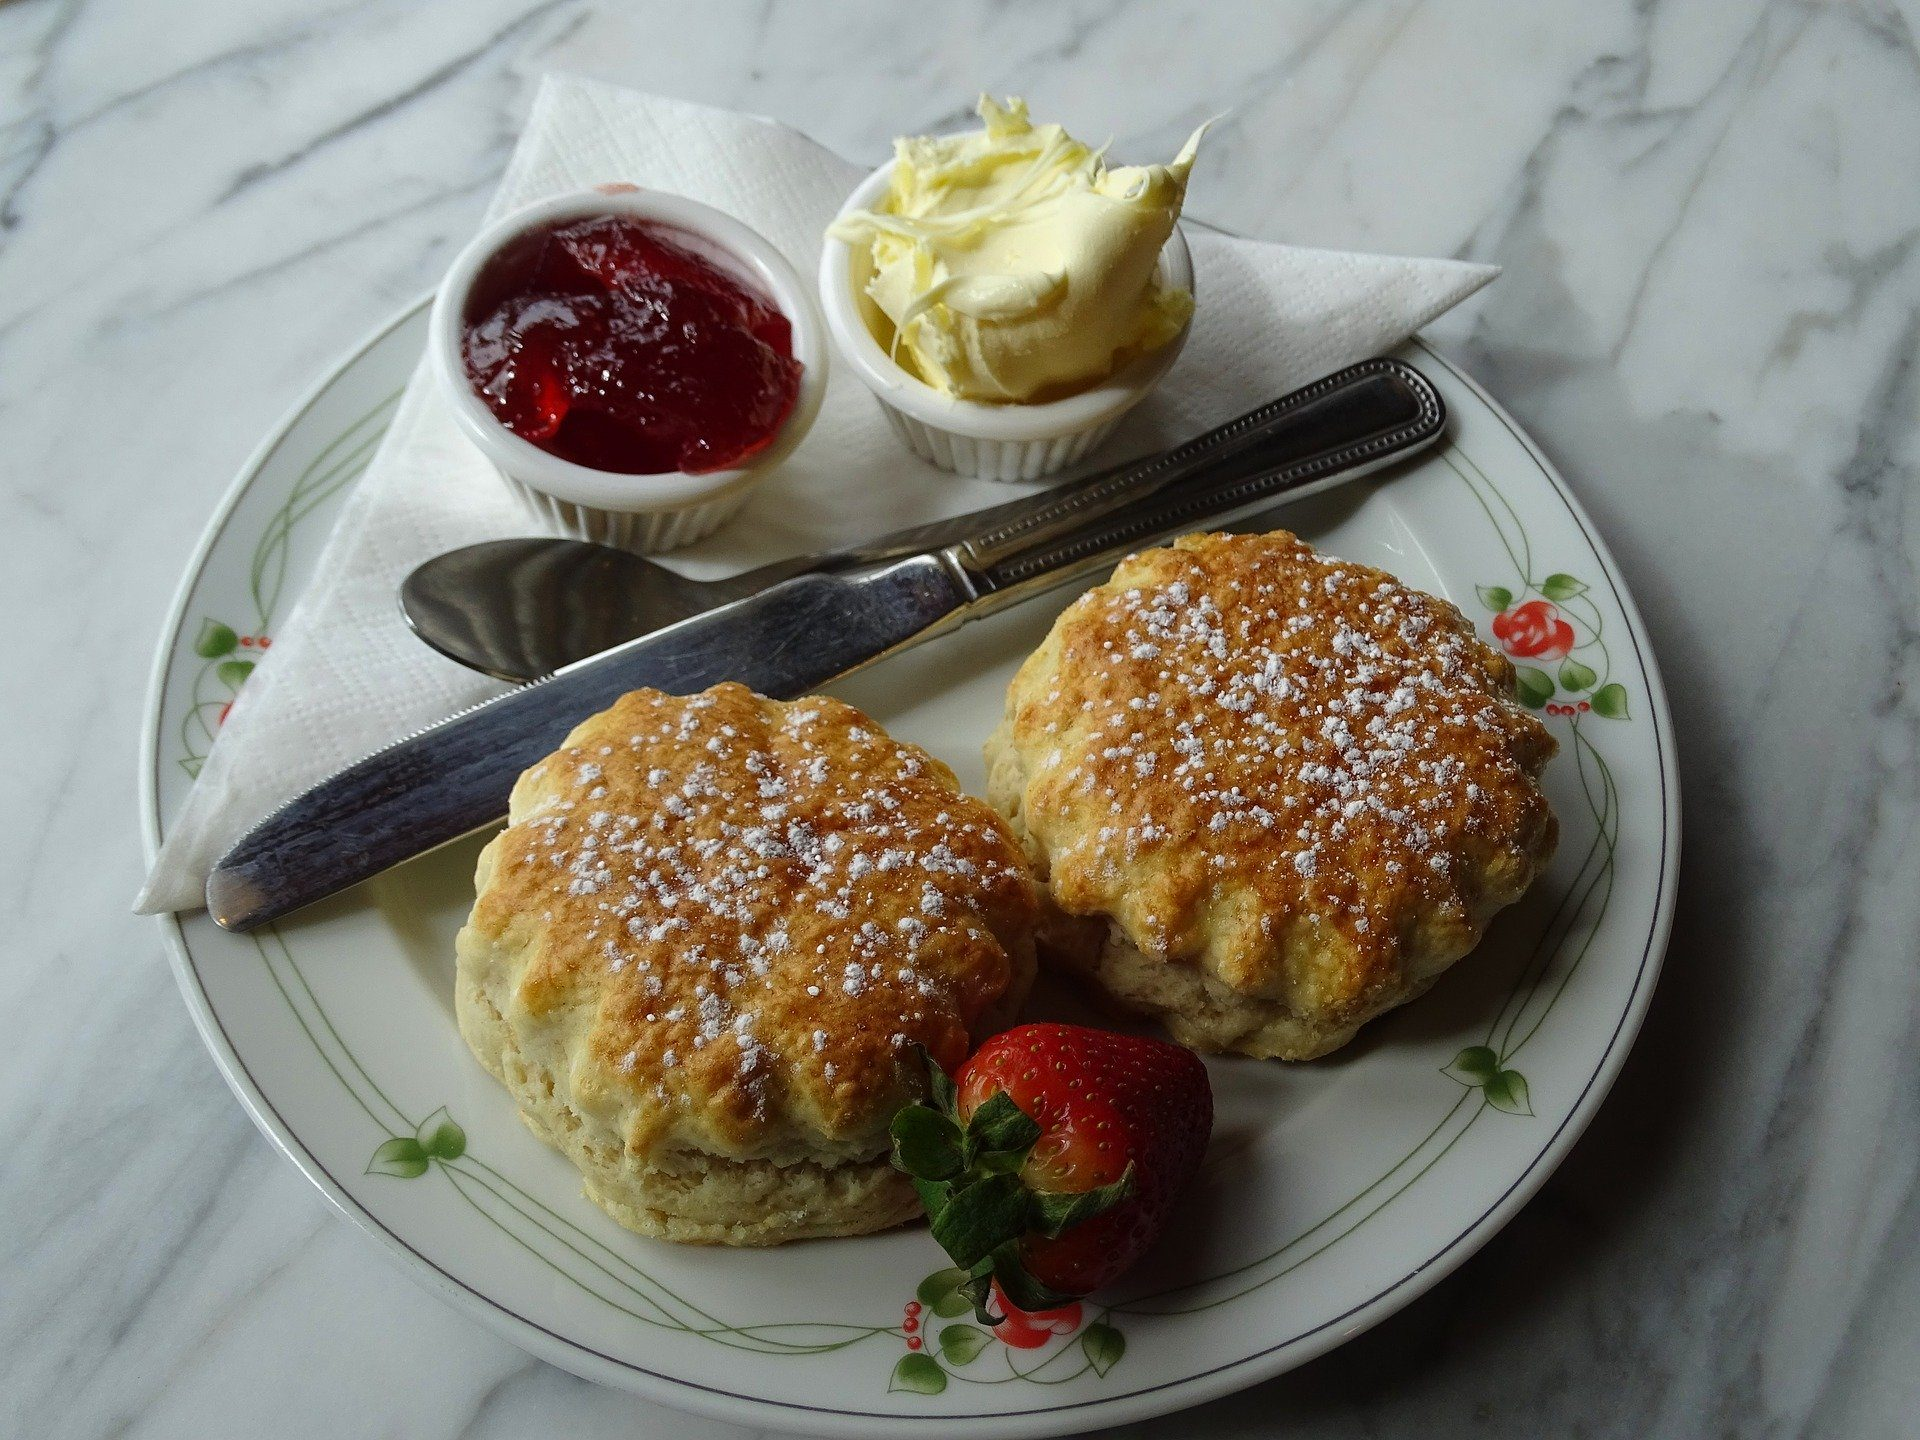 image shows a plate with 2 plain scones, a pot of clotted cream and a pot of jam